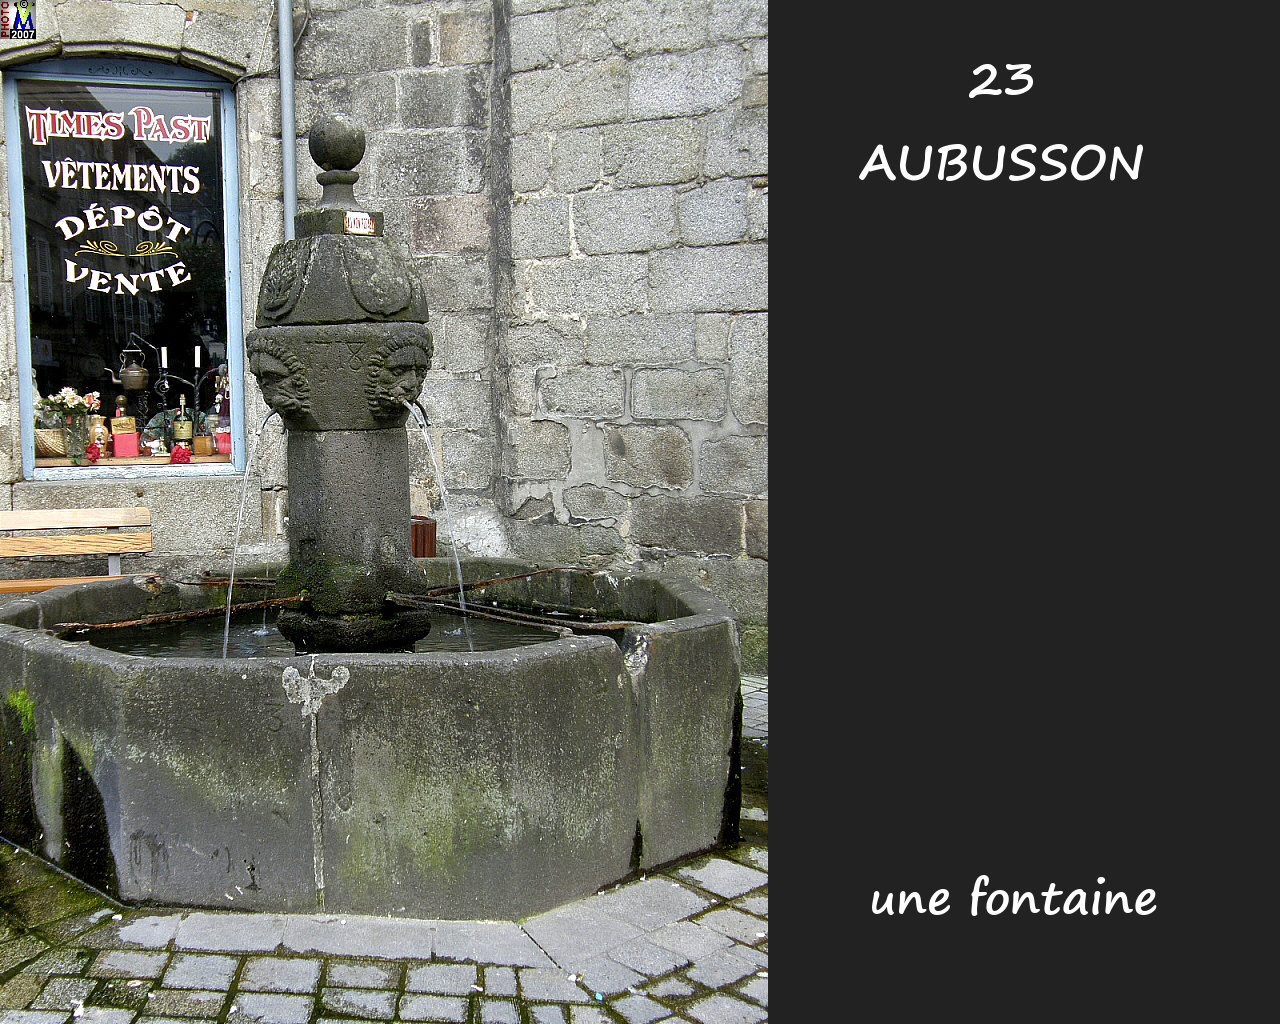 23AUBUSSON_fontaine_102.jpg